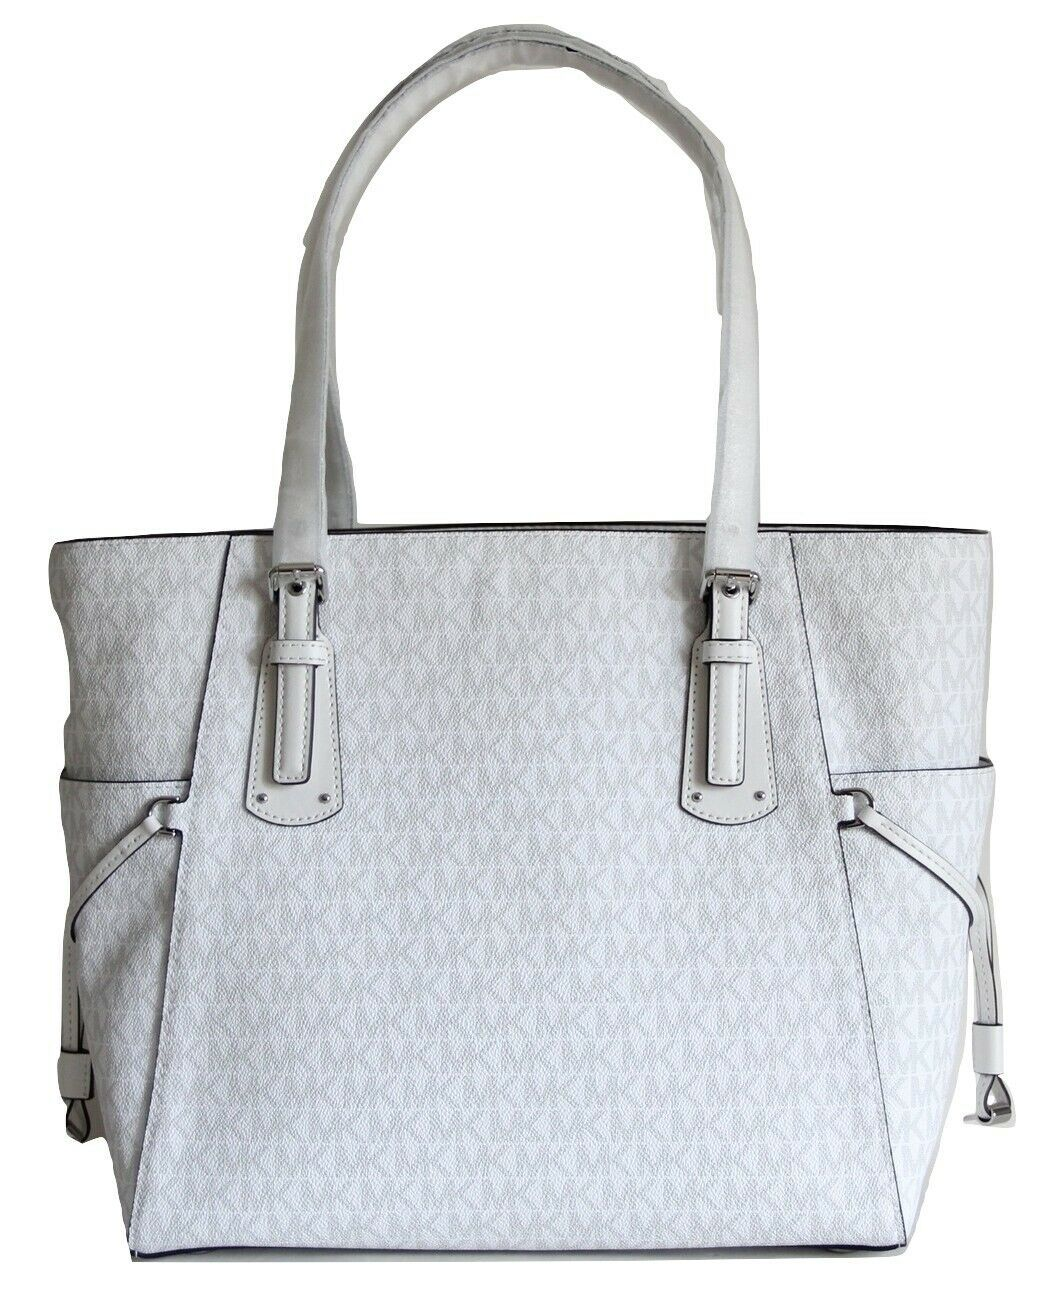 NWT MICHAEL KORS VOYAGER SIGNATURE EAST WEST TOTE BRIGHT WHITE image 5